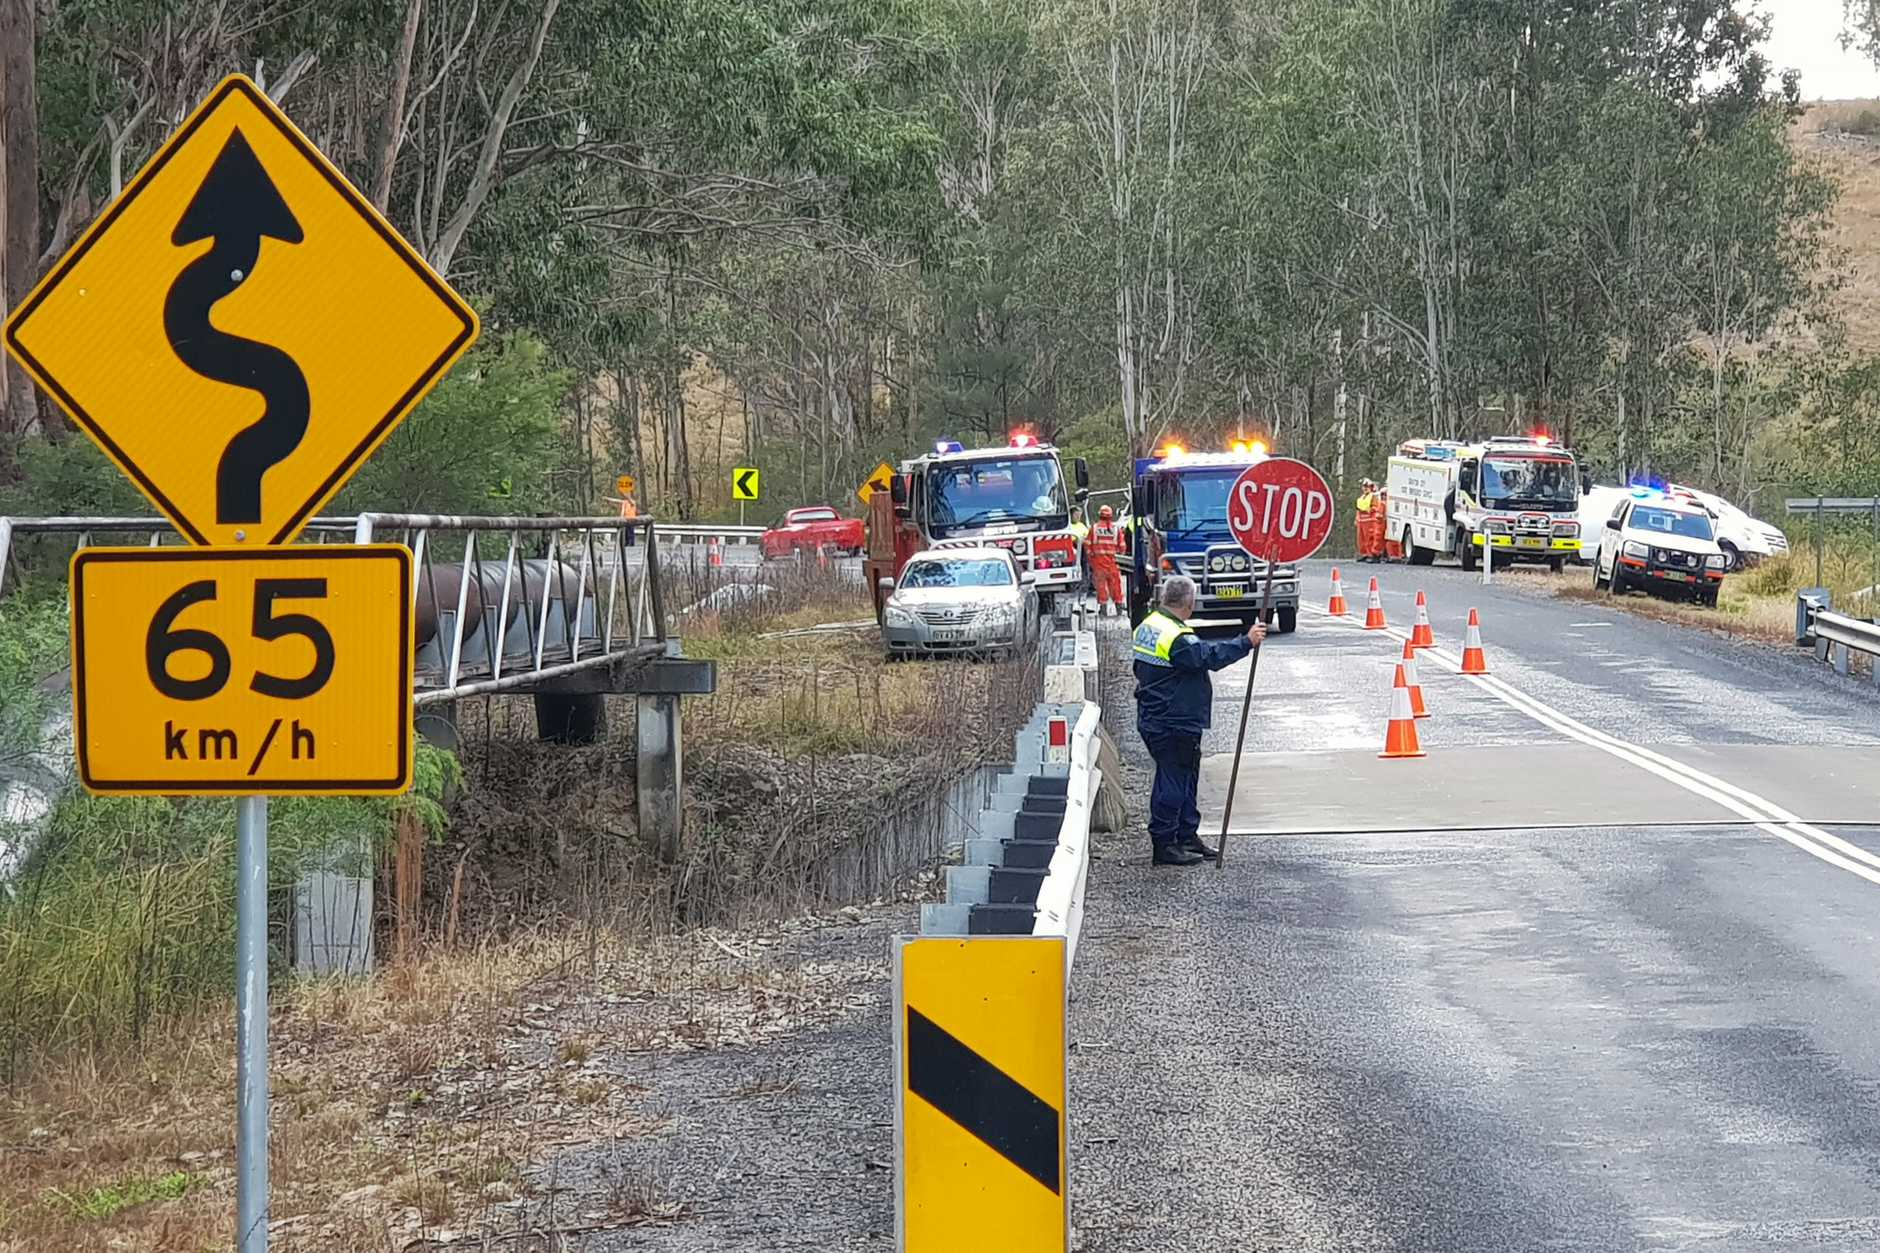 A 17-year-old girl died and another woman was taken to Grafton Base Hospital after being trapped following a three car crash on the Armidale Road about 40km south west of Grafton at about 8.30am on Saturday, 15th June, 2019.